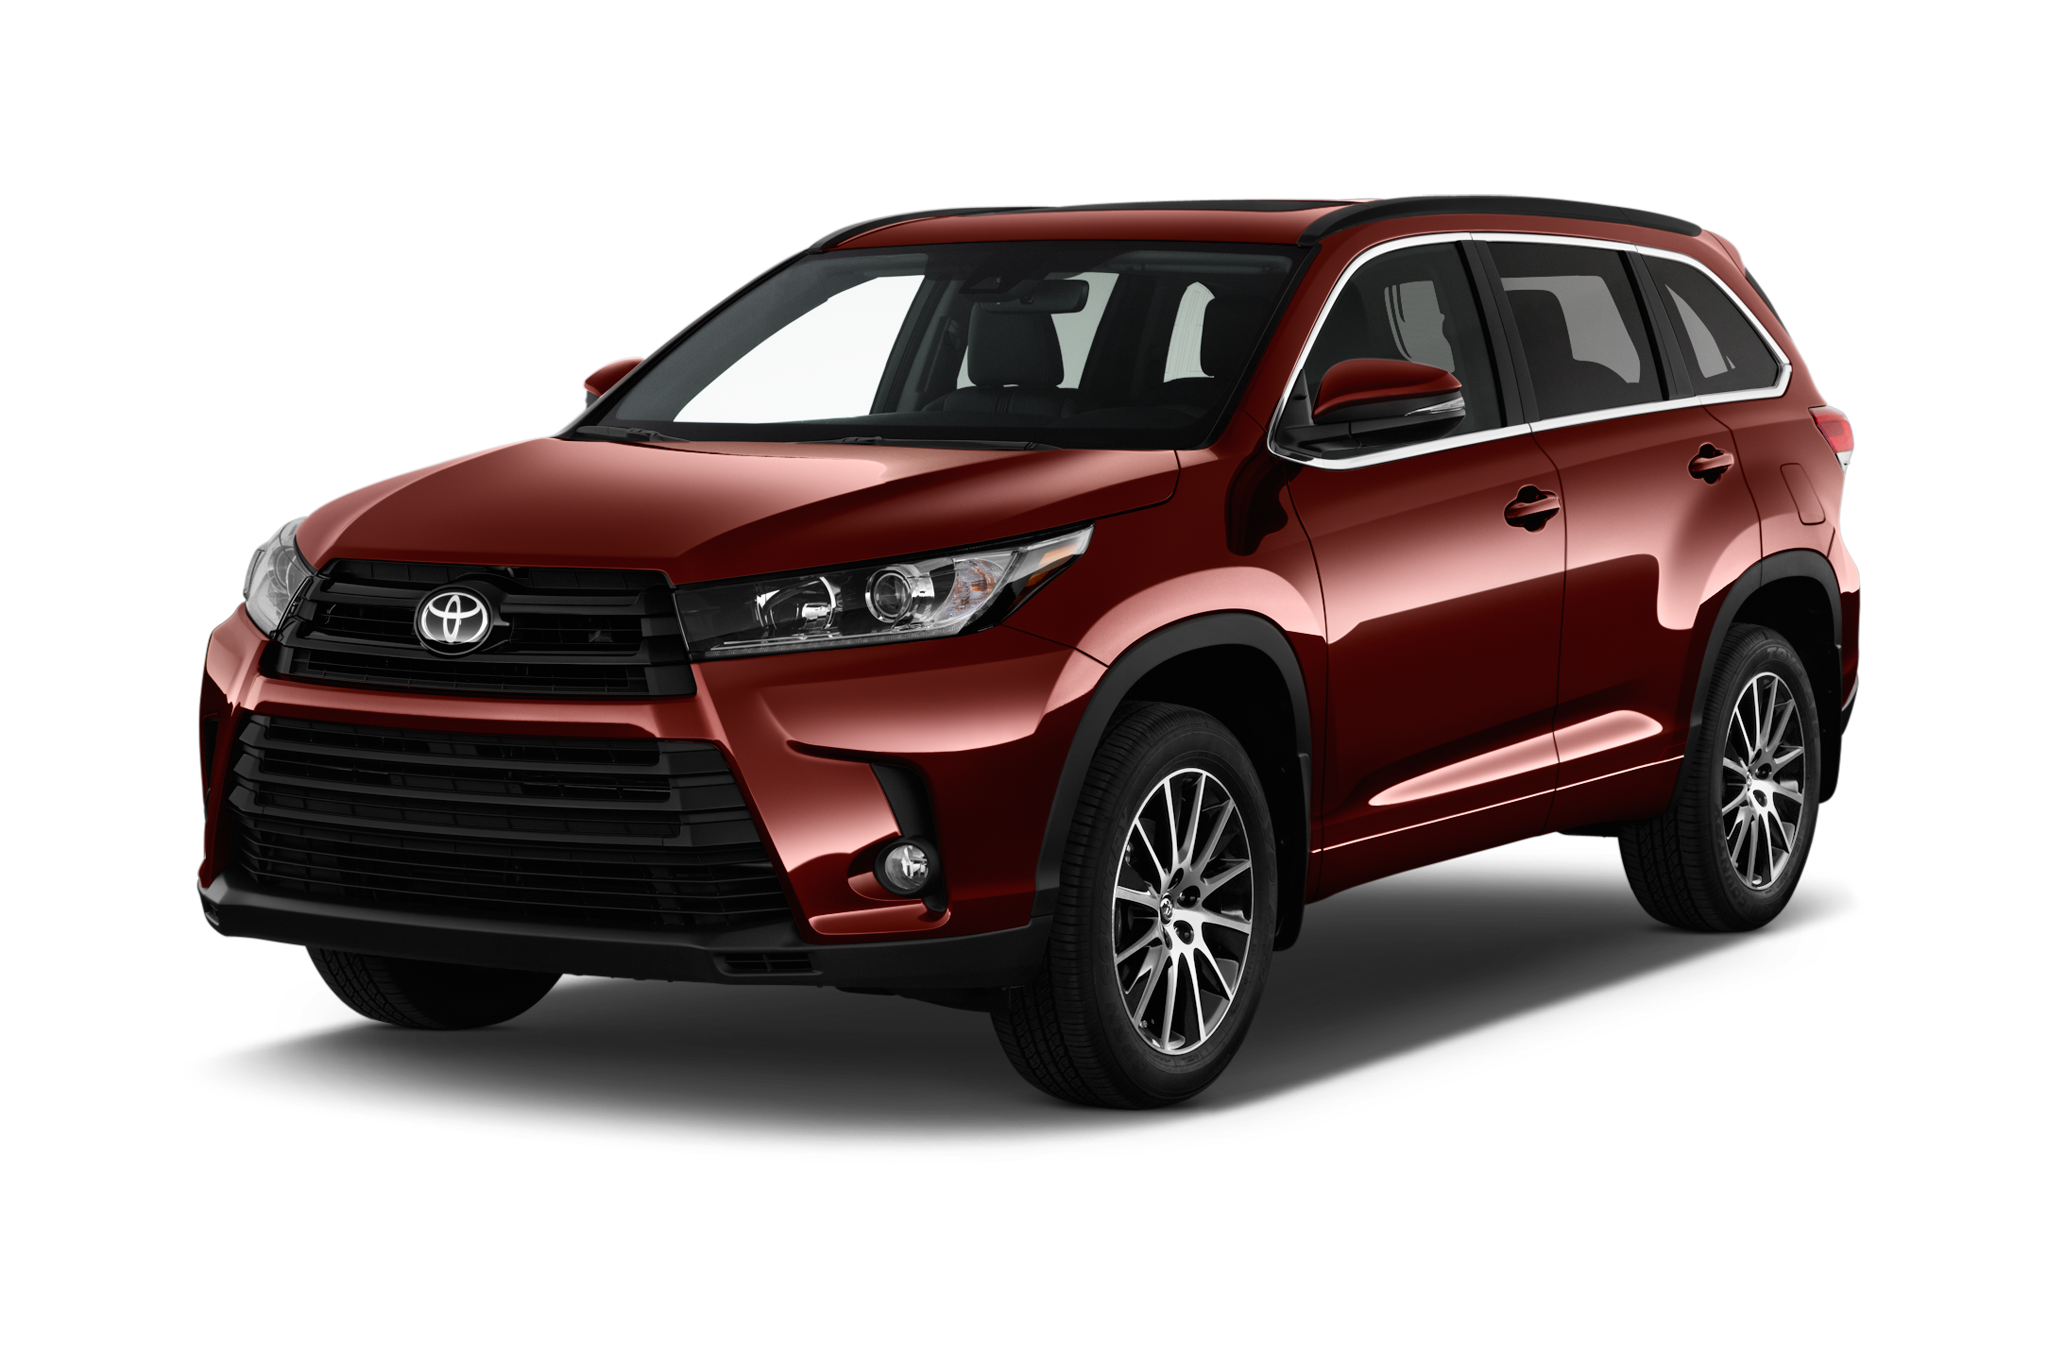 2018 toyota highlander xle awd pricing msn autos. Black Bedroom Furniture Sets. Home Design Ideas